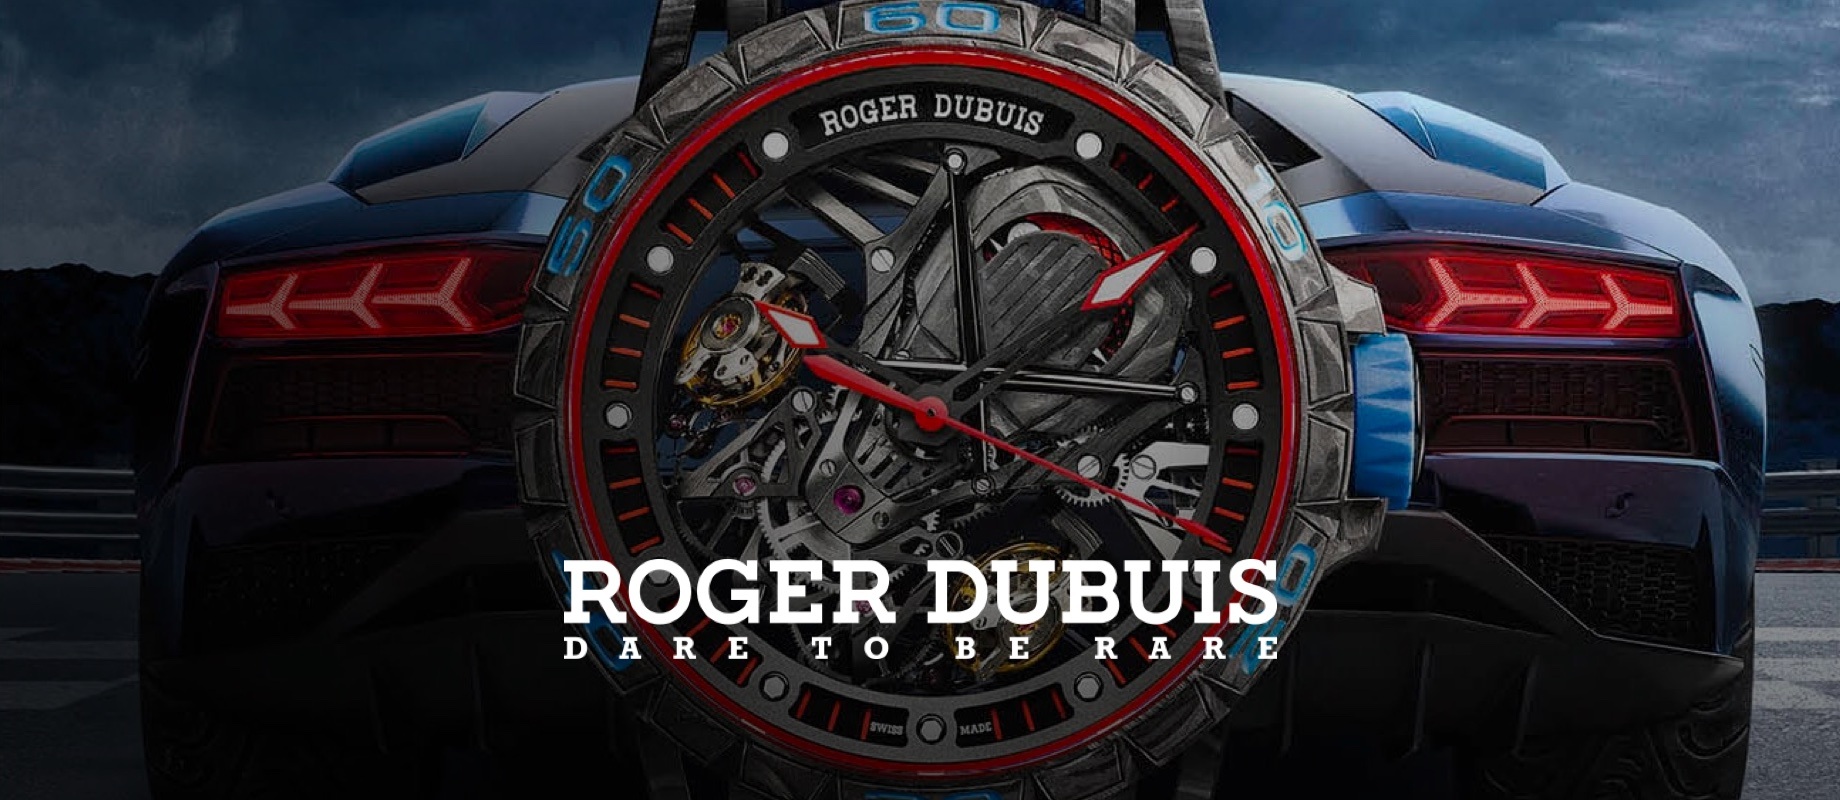 ROGER DUBUIS DARE TO BE RARE